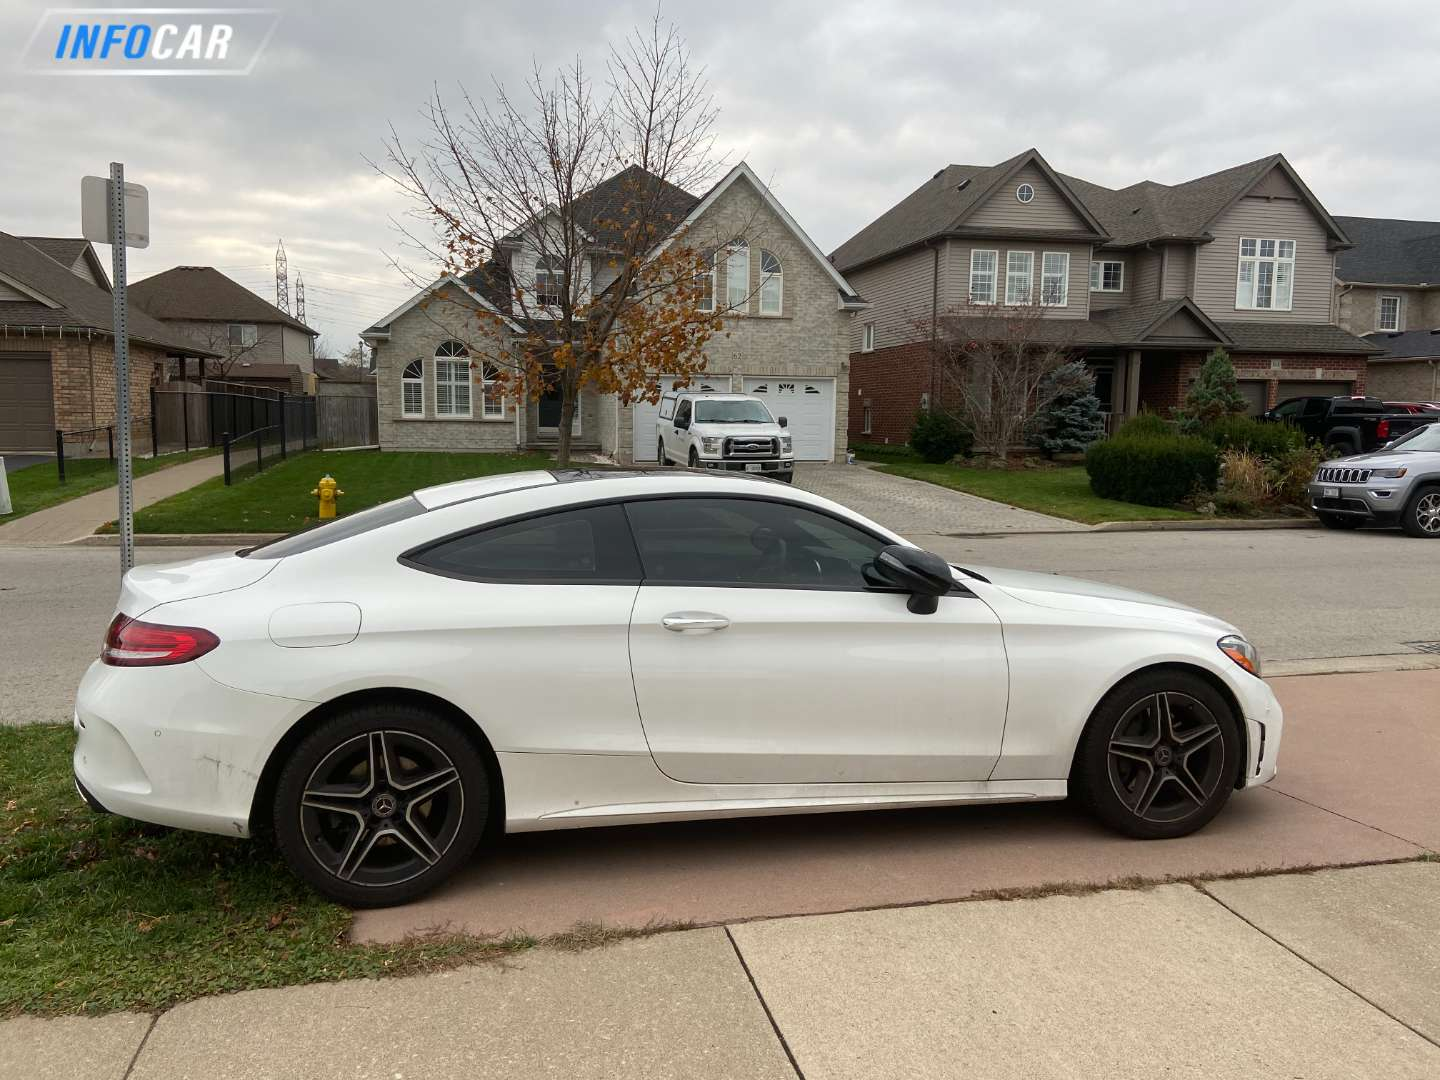 2019 Mercedes-Benz C-Class C300 Coupe - INFOCAR - Toronto's Most Comprehensive New and Used Auto Trading Platform